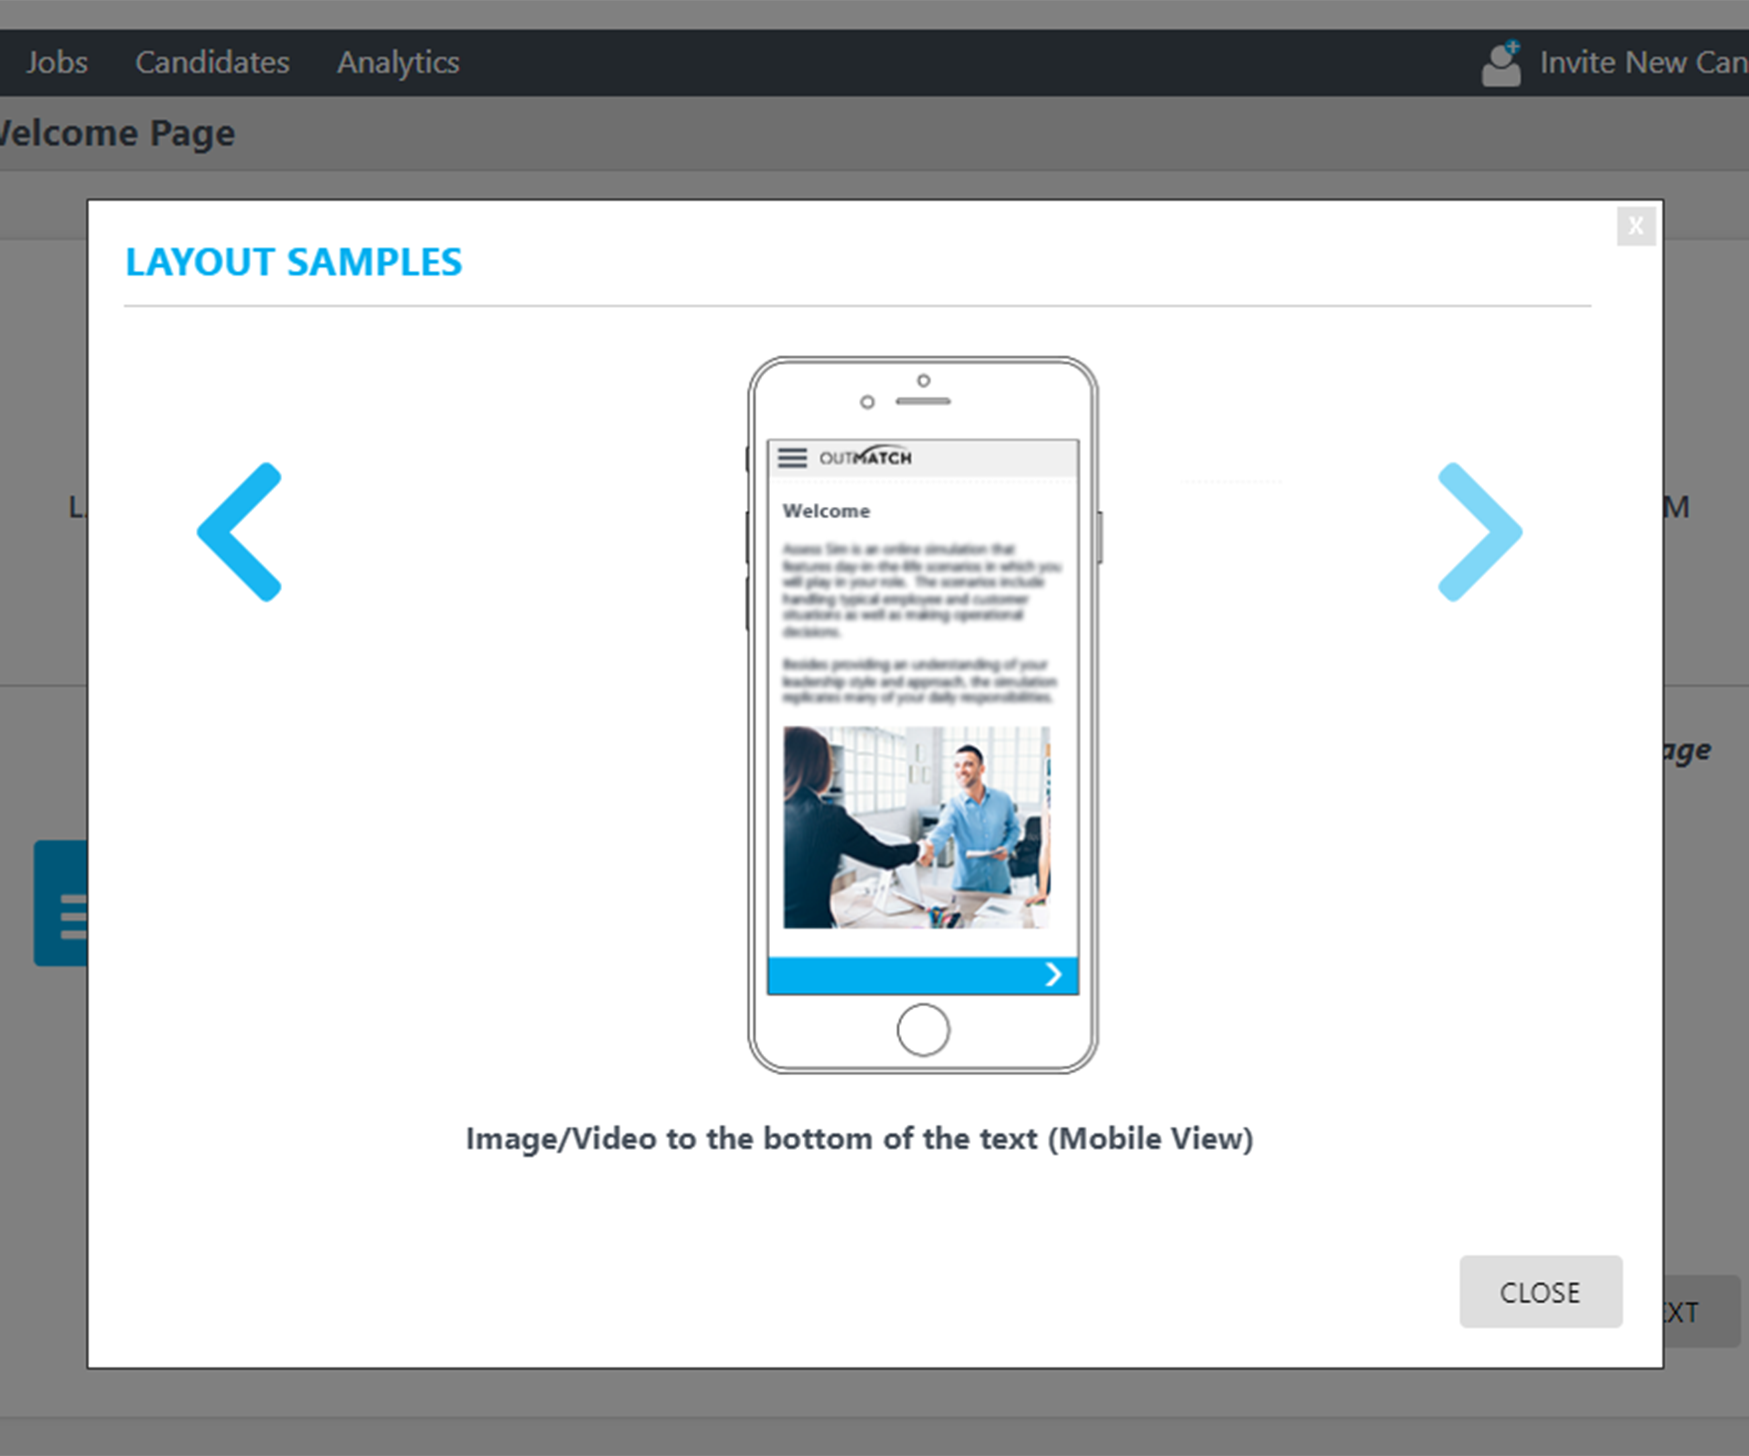 An optimized mobile experience for assessments aims to engage candidates and boost completion rates